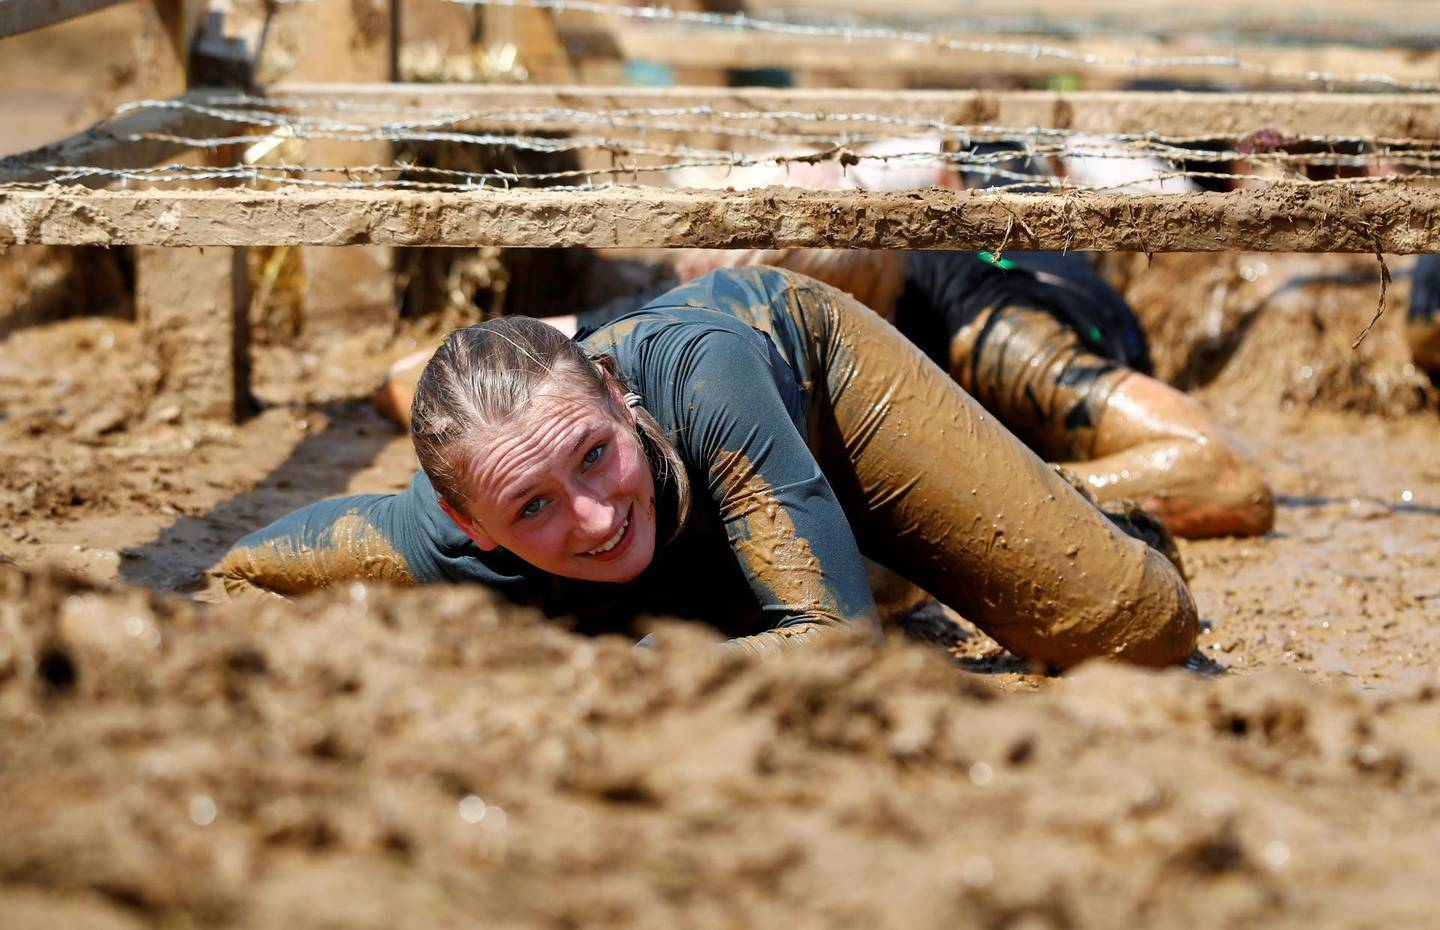 """FILE PHOTO: A woman crawls through an obstacle called """"kiss of mud"""" during the Tough Mudder untimed hardcore endurance event in Arnsberg, Germany June 1, 2019.  REUTERS/Wolfgang Rattay/File Photo"""